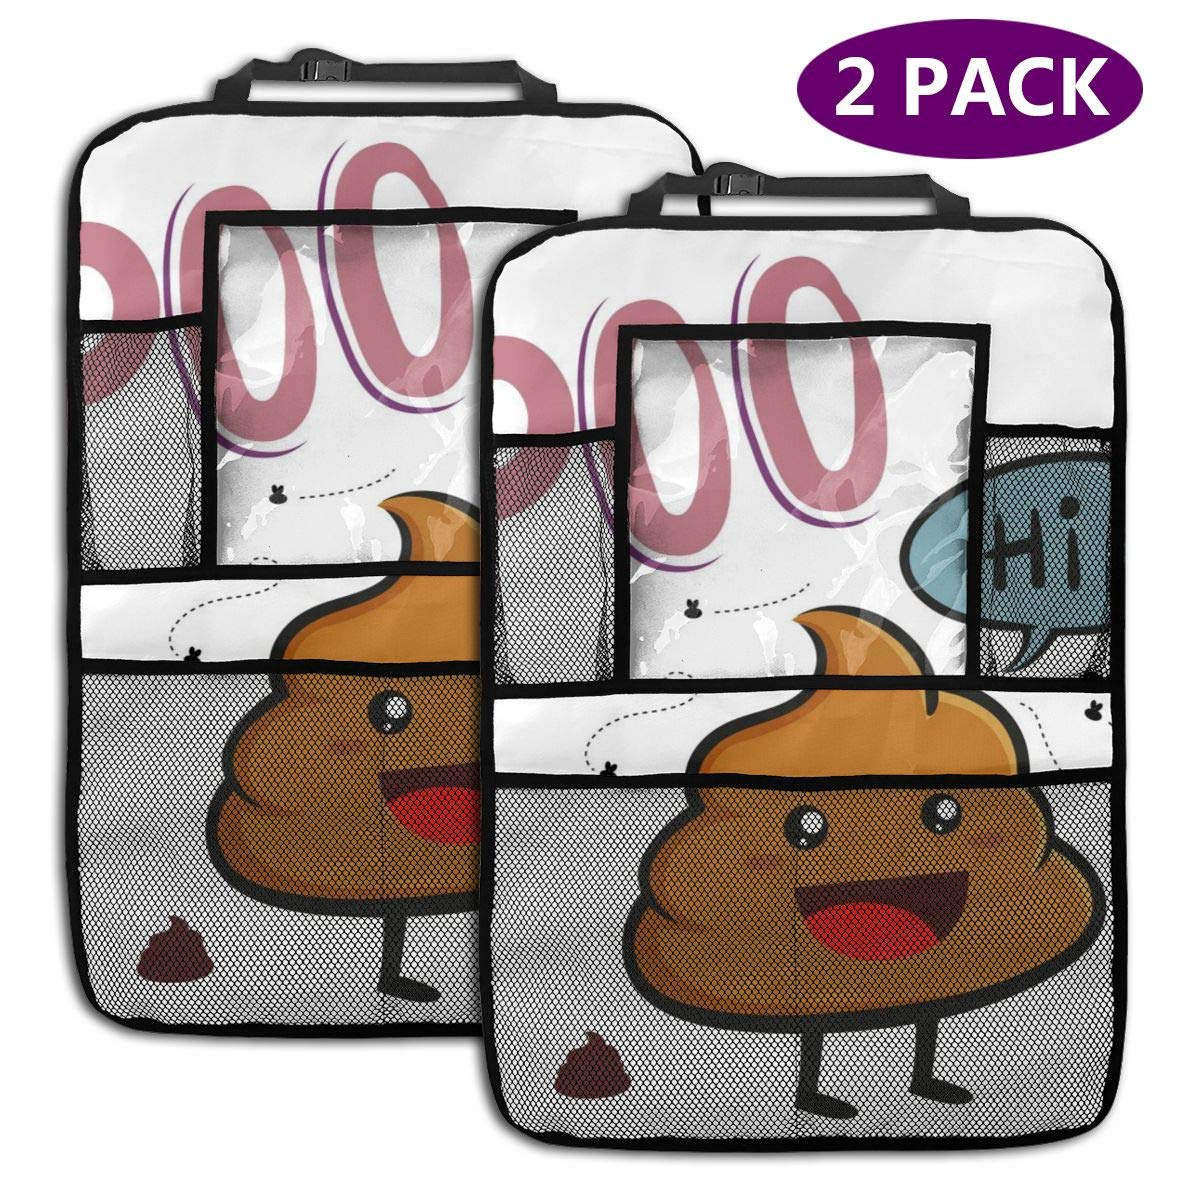 Friendly Poop Character 2 Pack Car Seat Organizer Kick Mat Protector Durable Quality Seat Covers Protectors by LZQEEN